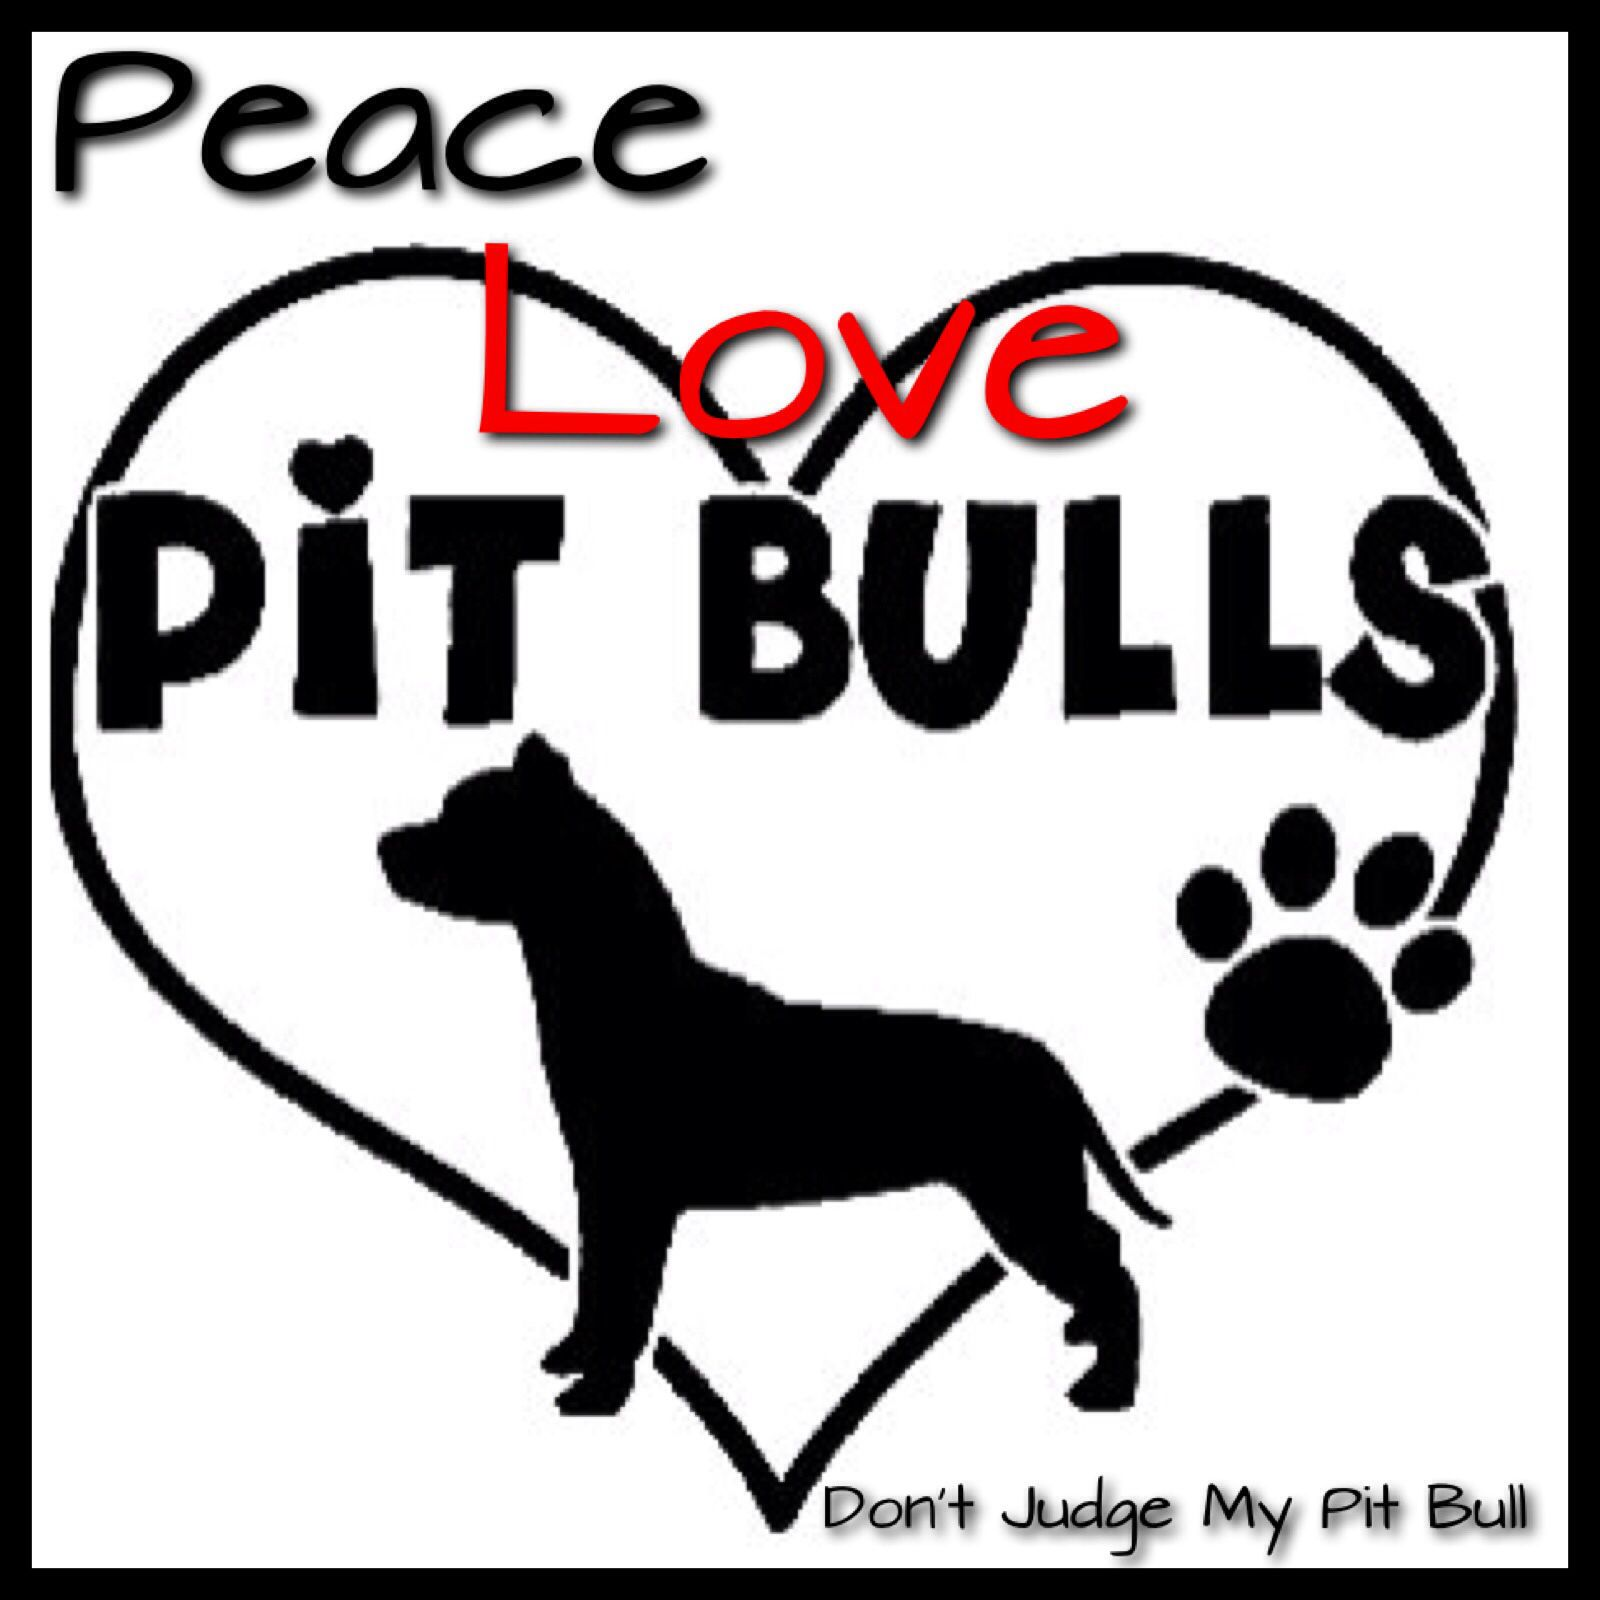 Peace for Pitbulls vinyl decal//sticker dog animal pet Pitbull breed cute love